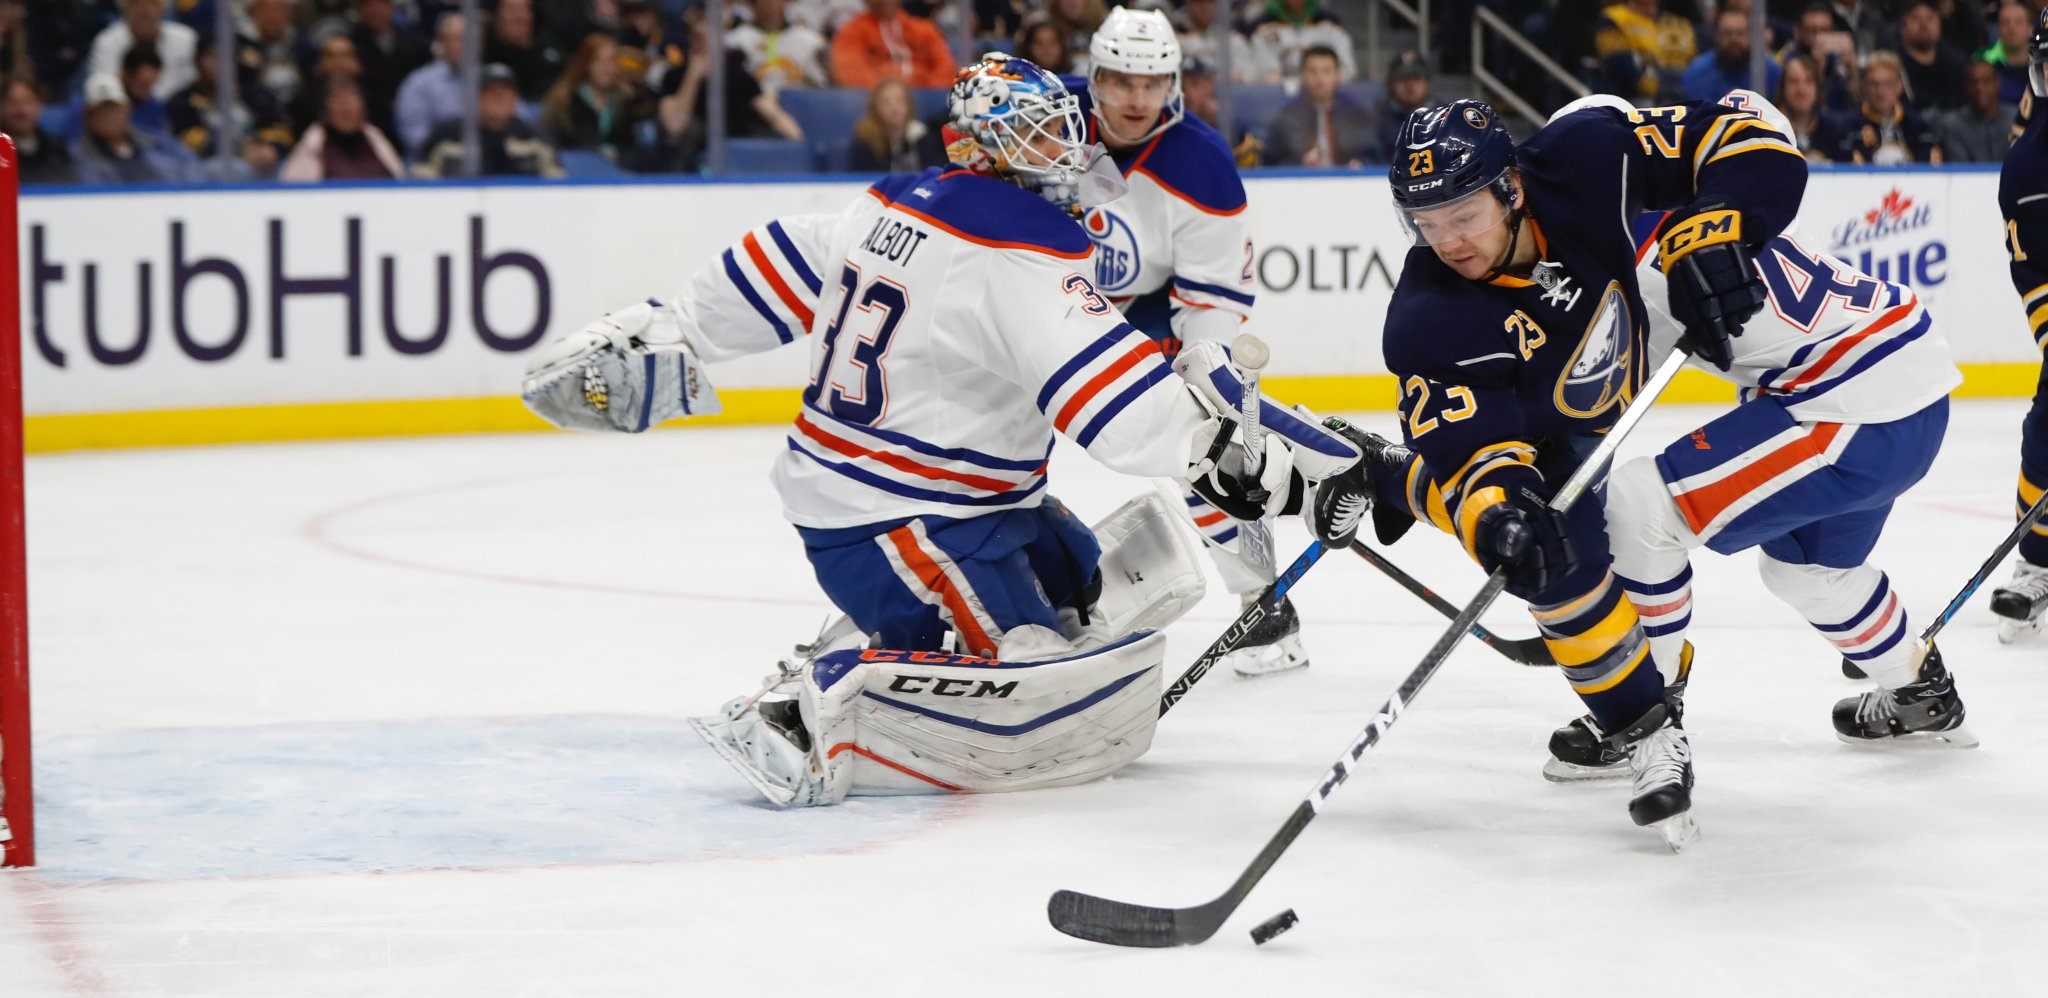 The Sabres' Sam Reinhart can't get a power-play shot past Edmonton goalie Cam Talbot (Harry Scull Jr./Buffalo News)